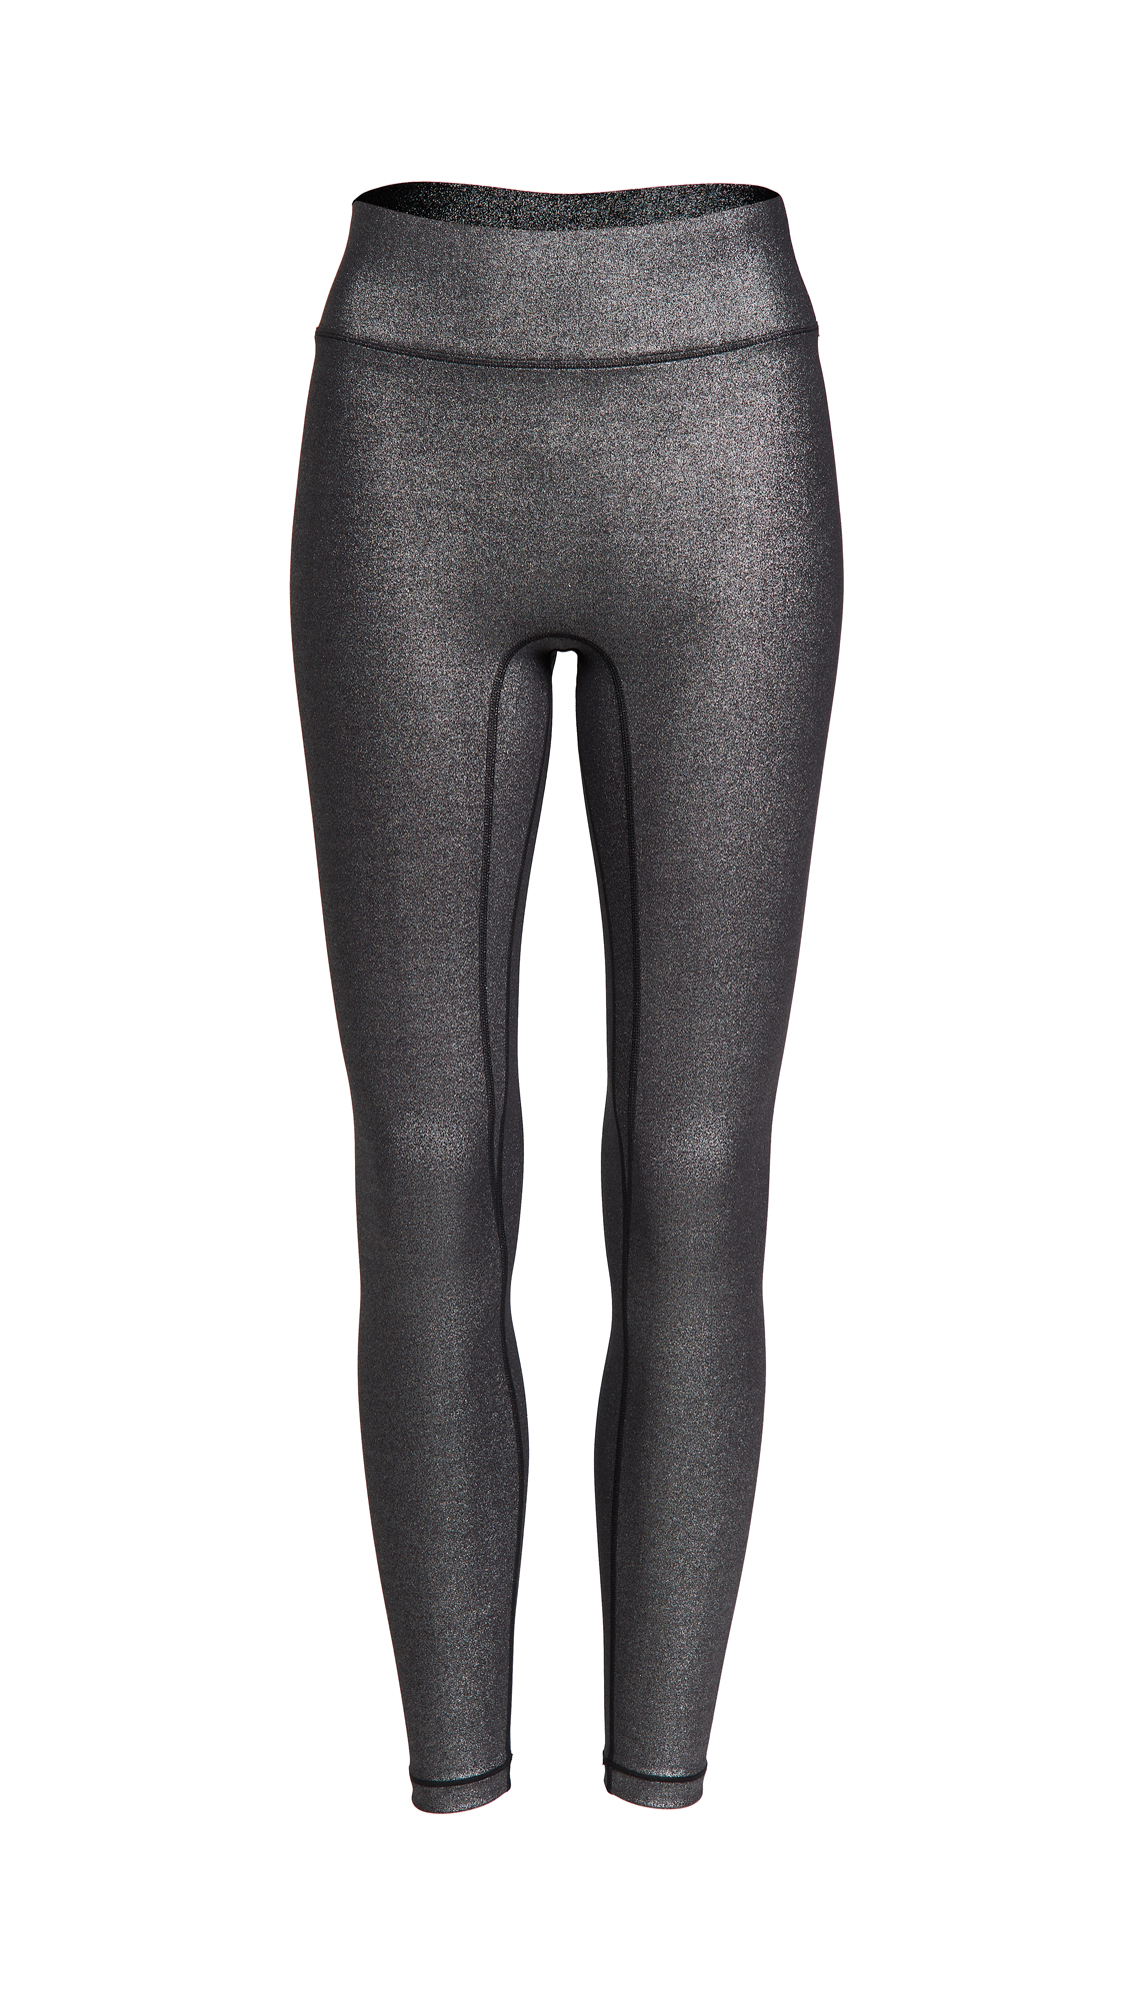 All Access Clothing CENTER STAGE LEGGINGS